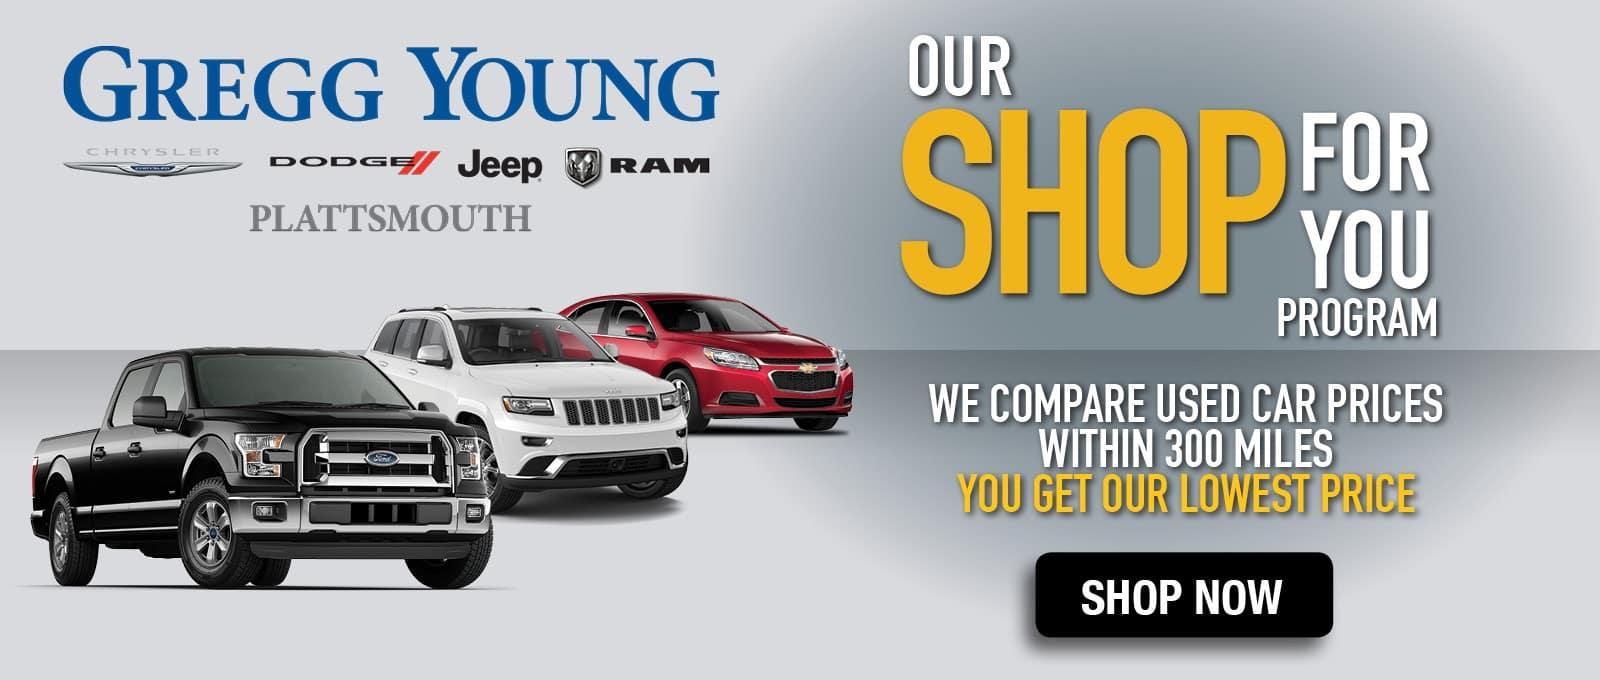 Jeep Dealers Omaha >> Gregg Young Chrysler Dodge Jeep Ram Of Plattsmouth Dodge